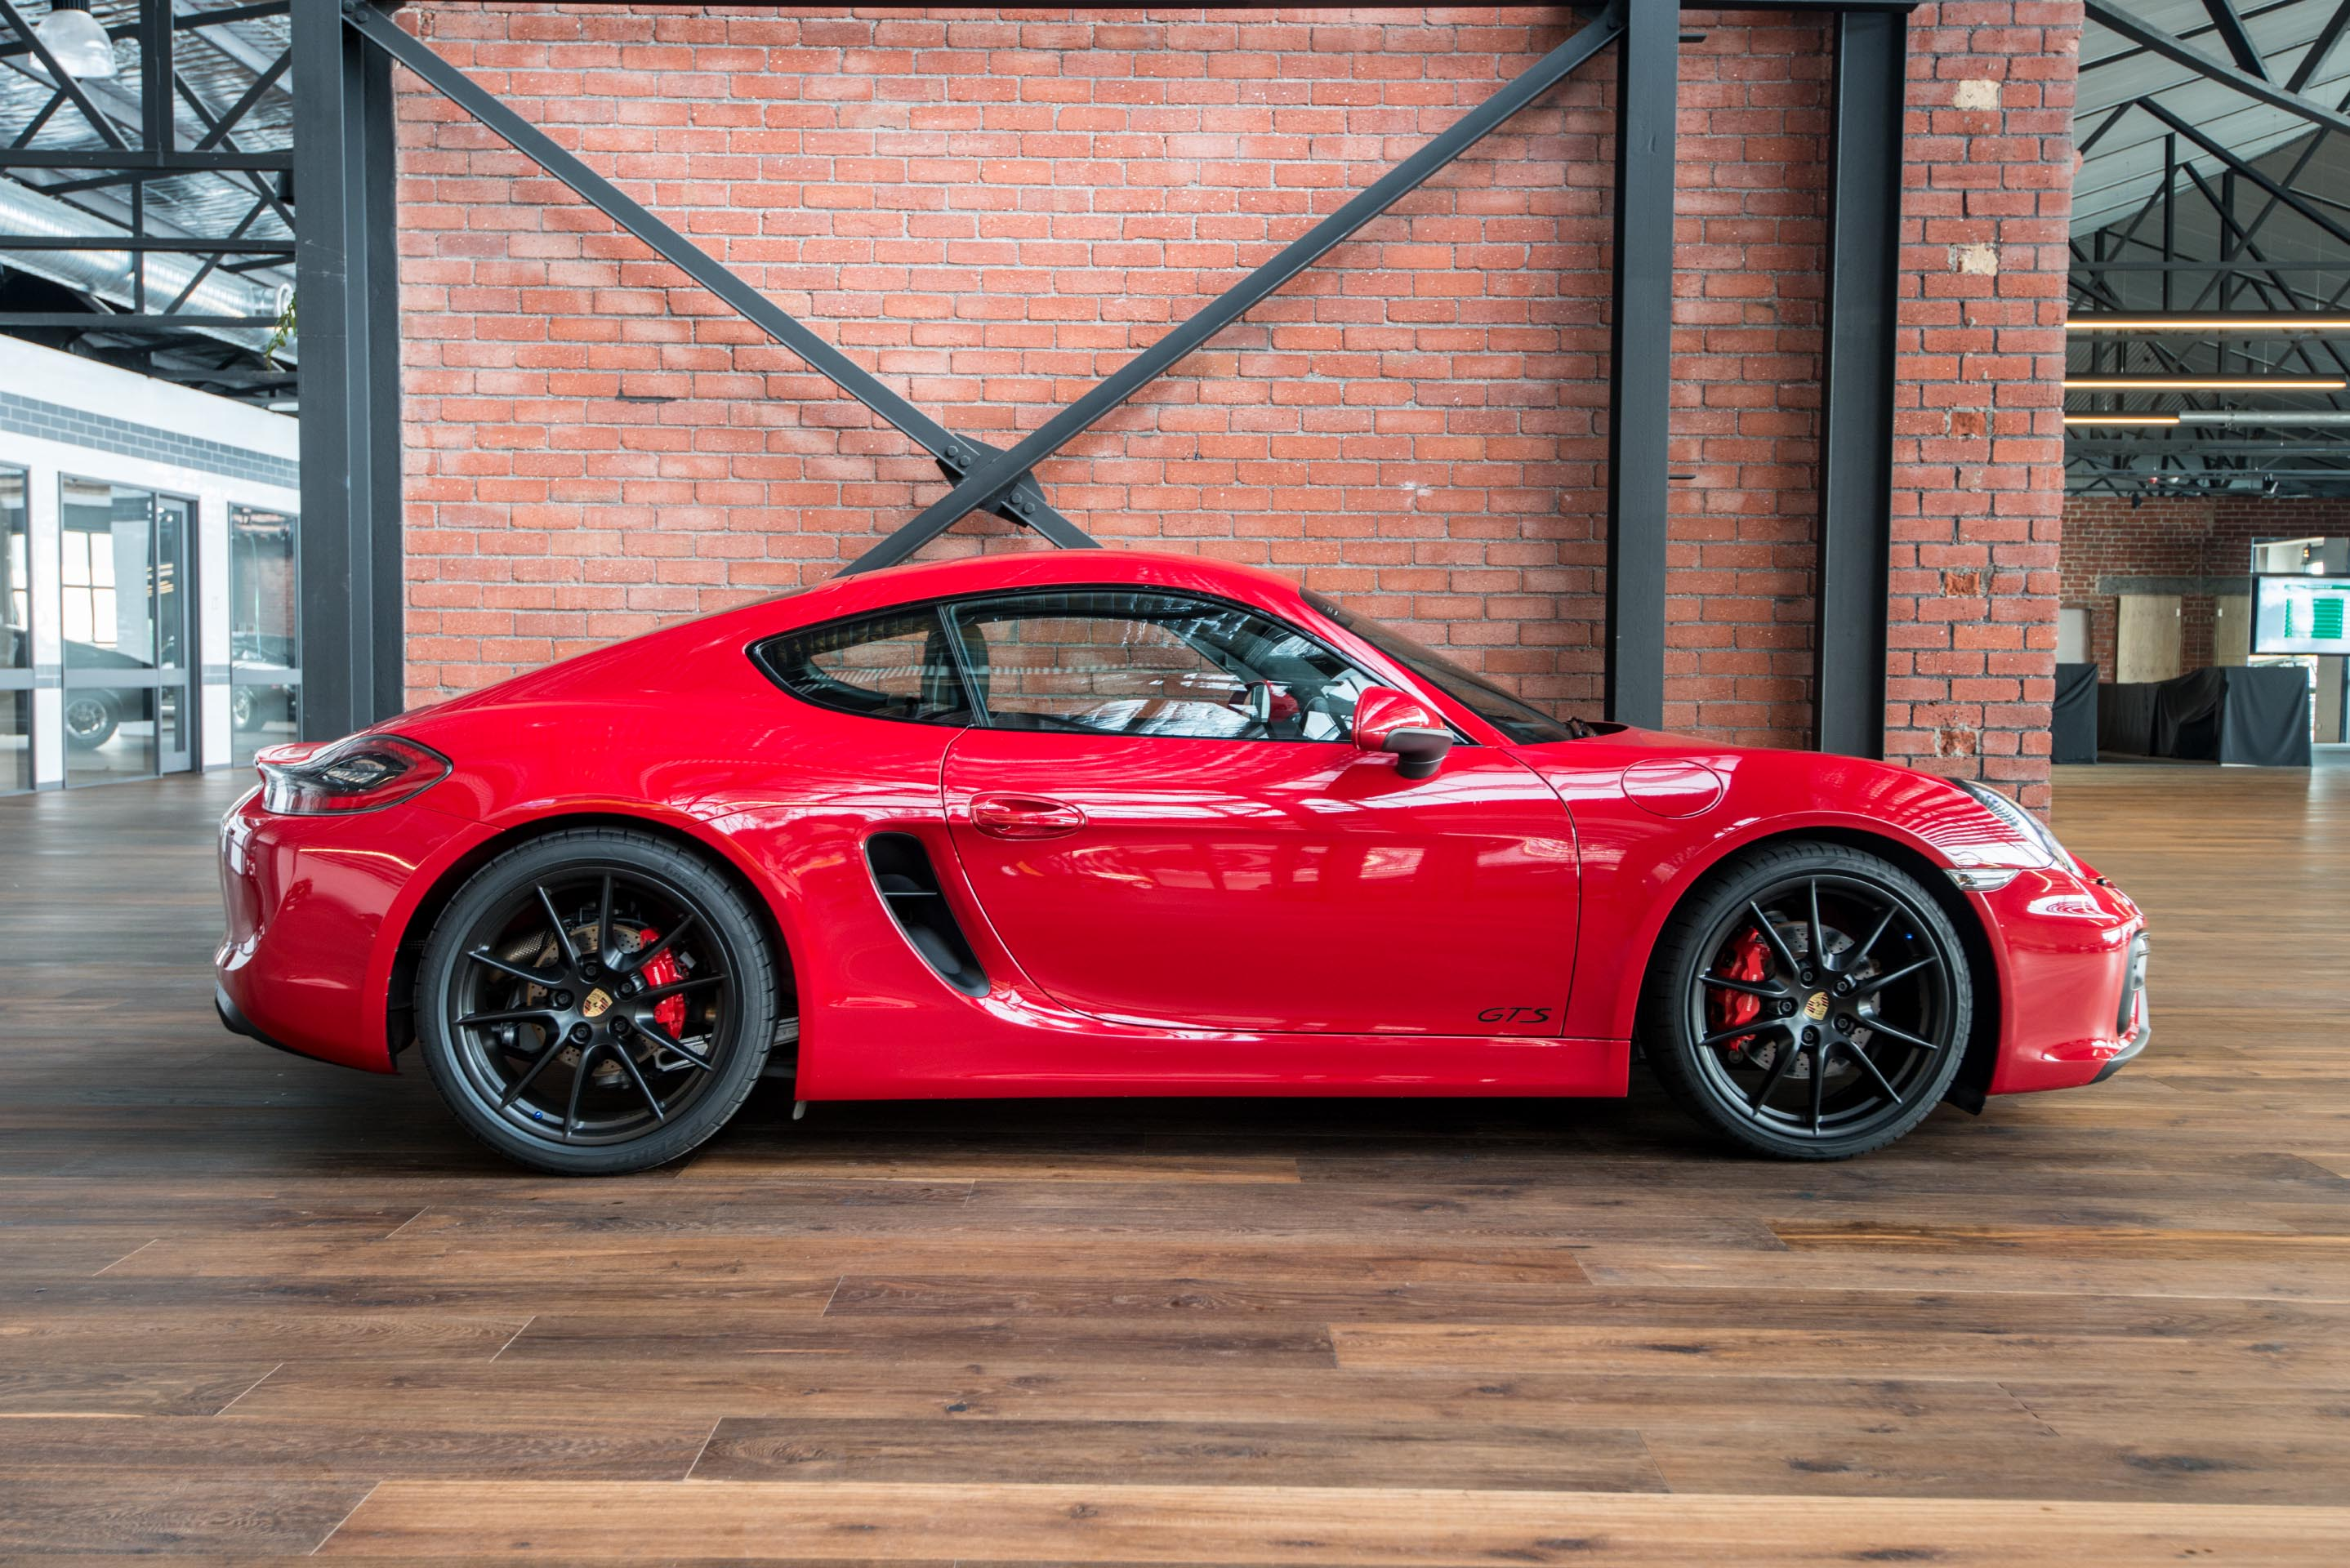 Sell By Owner >> 2015 Porsche Cayman GTS - Richmonds - Classic and Prestige Cars - Storage and Sales - Adelaide ...